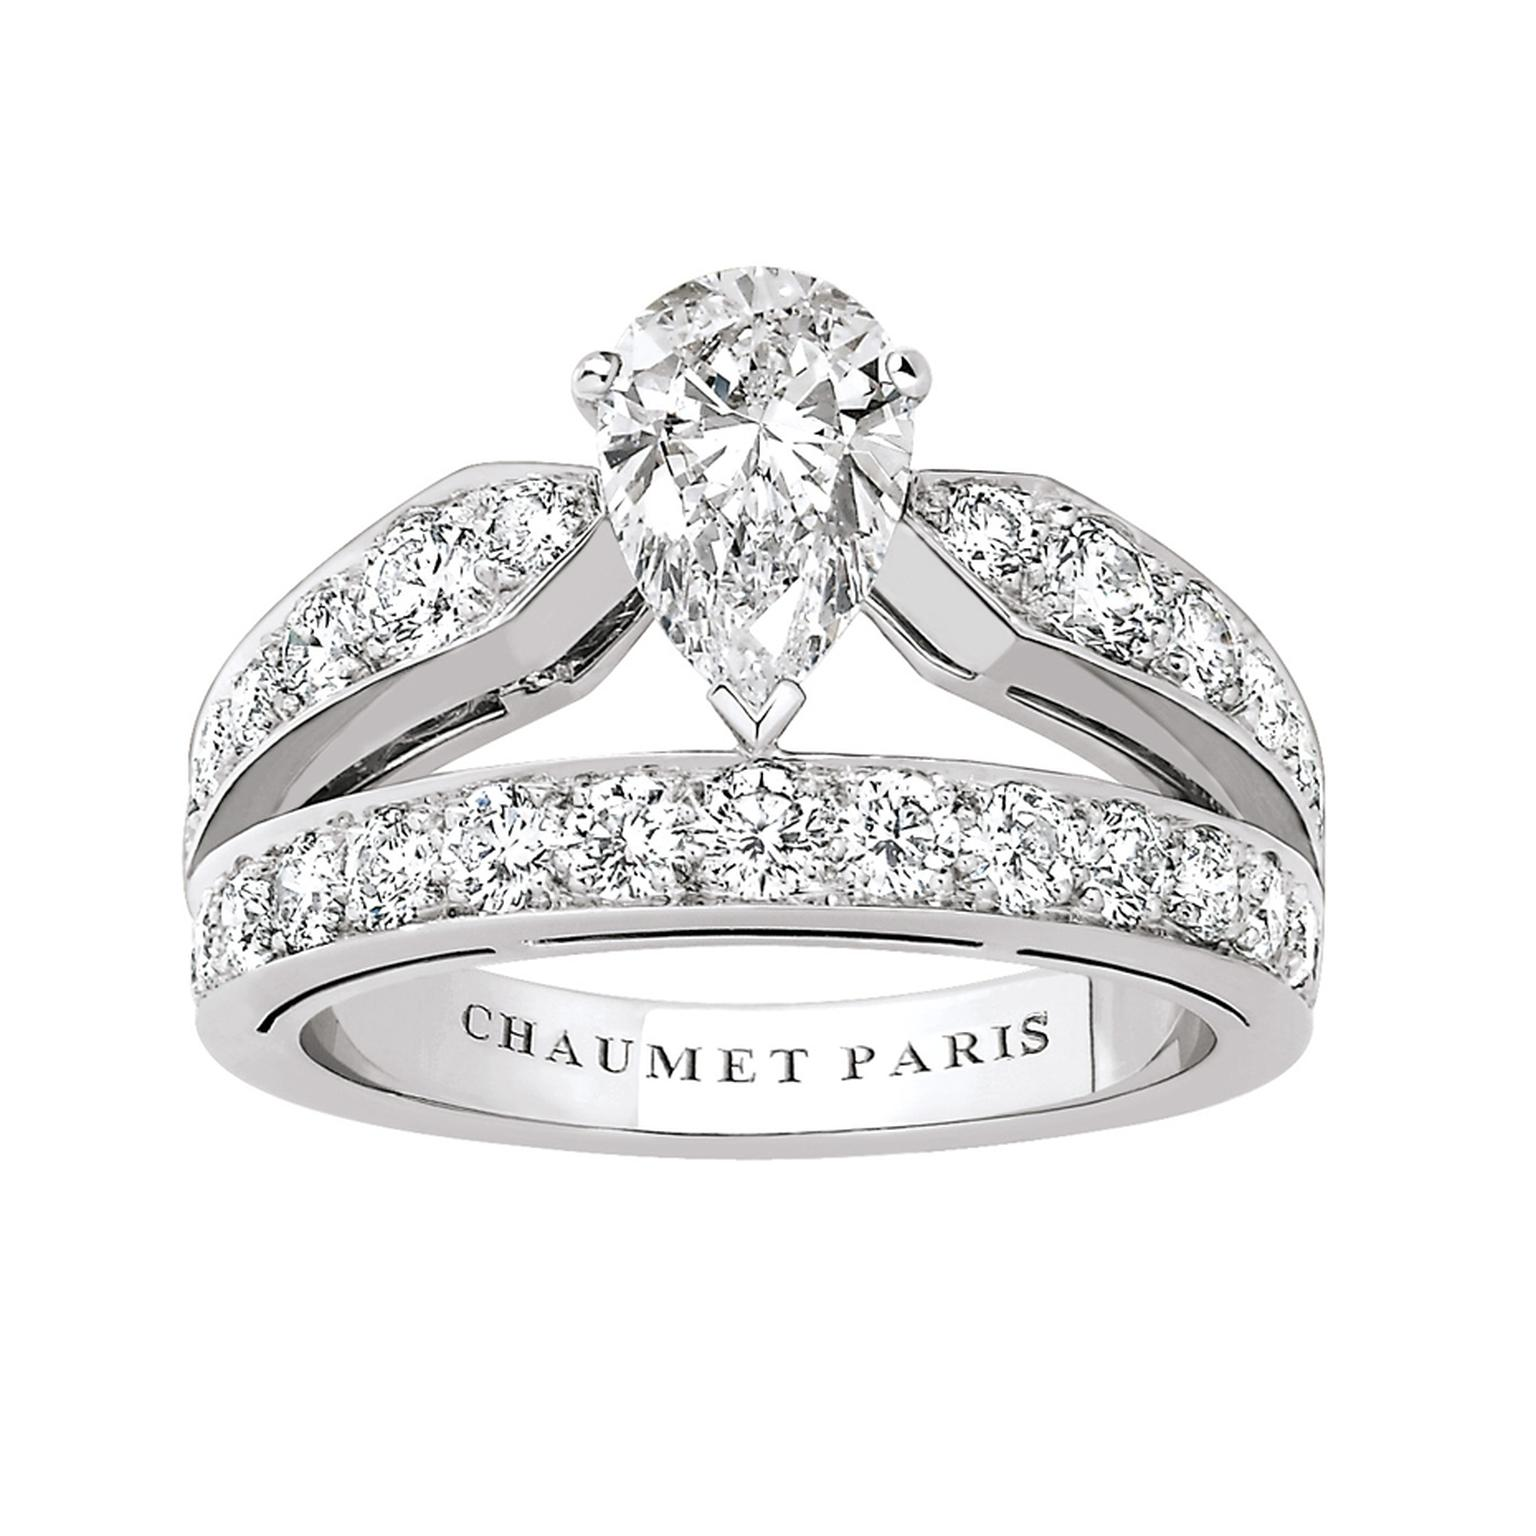 Chaumet's Joséphine collection engagement ring features an engagement ring in the shape of a tiara, fully pavéd with brilliant-cut diamonds with a pear-shaped diamond at its centre.